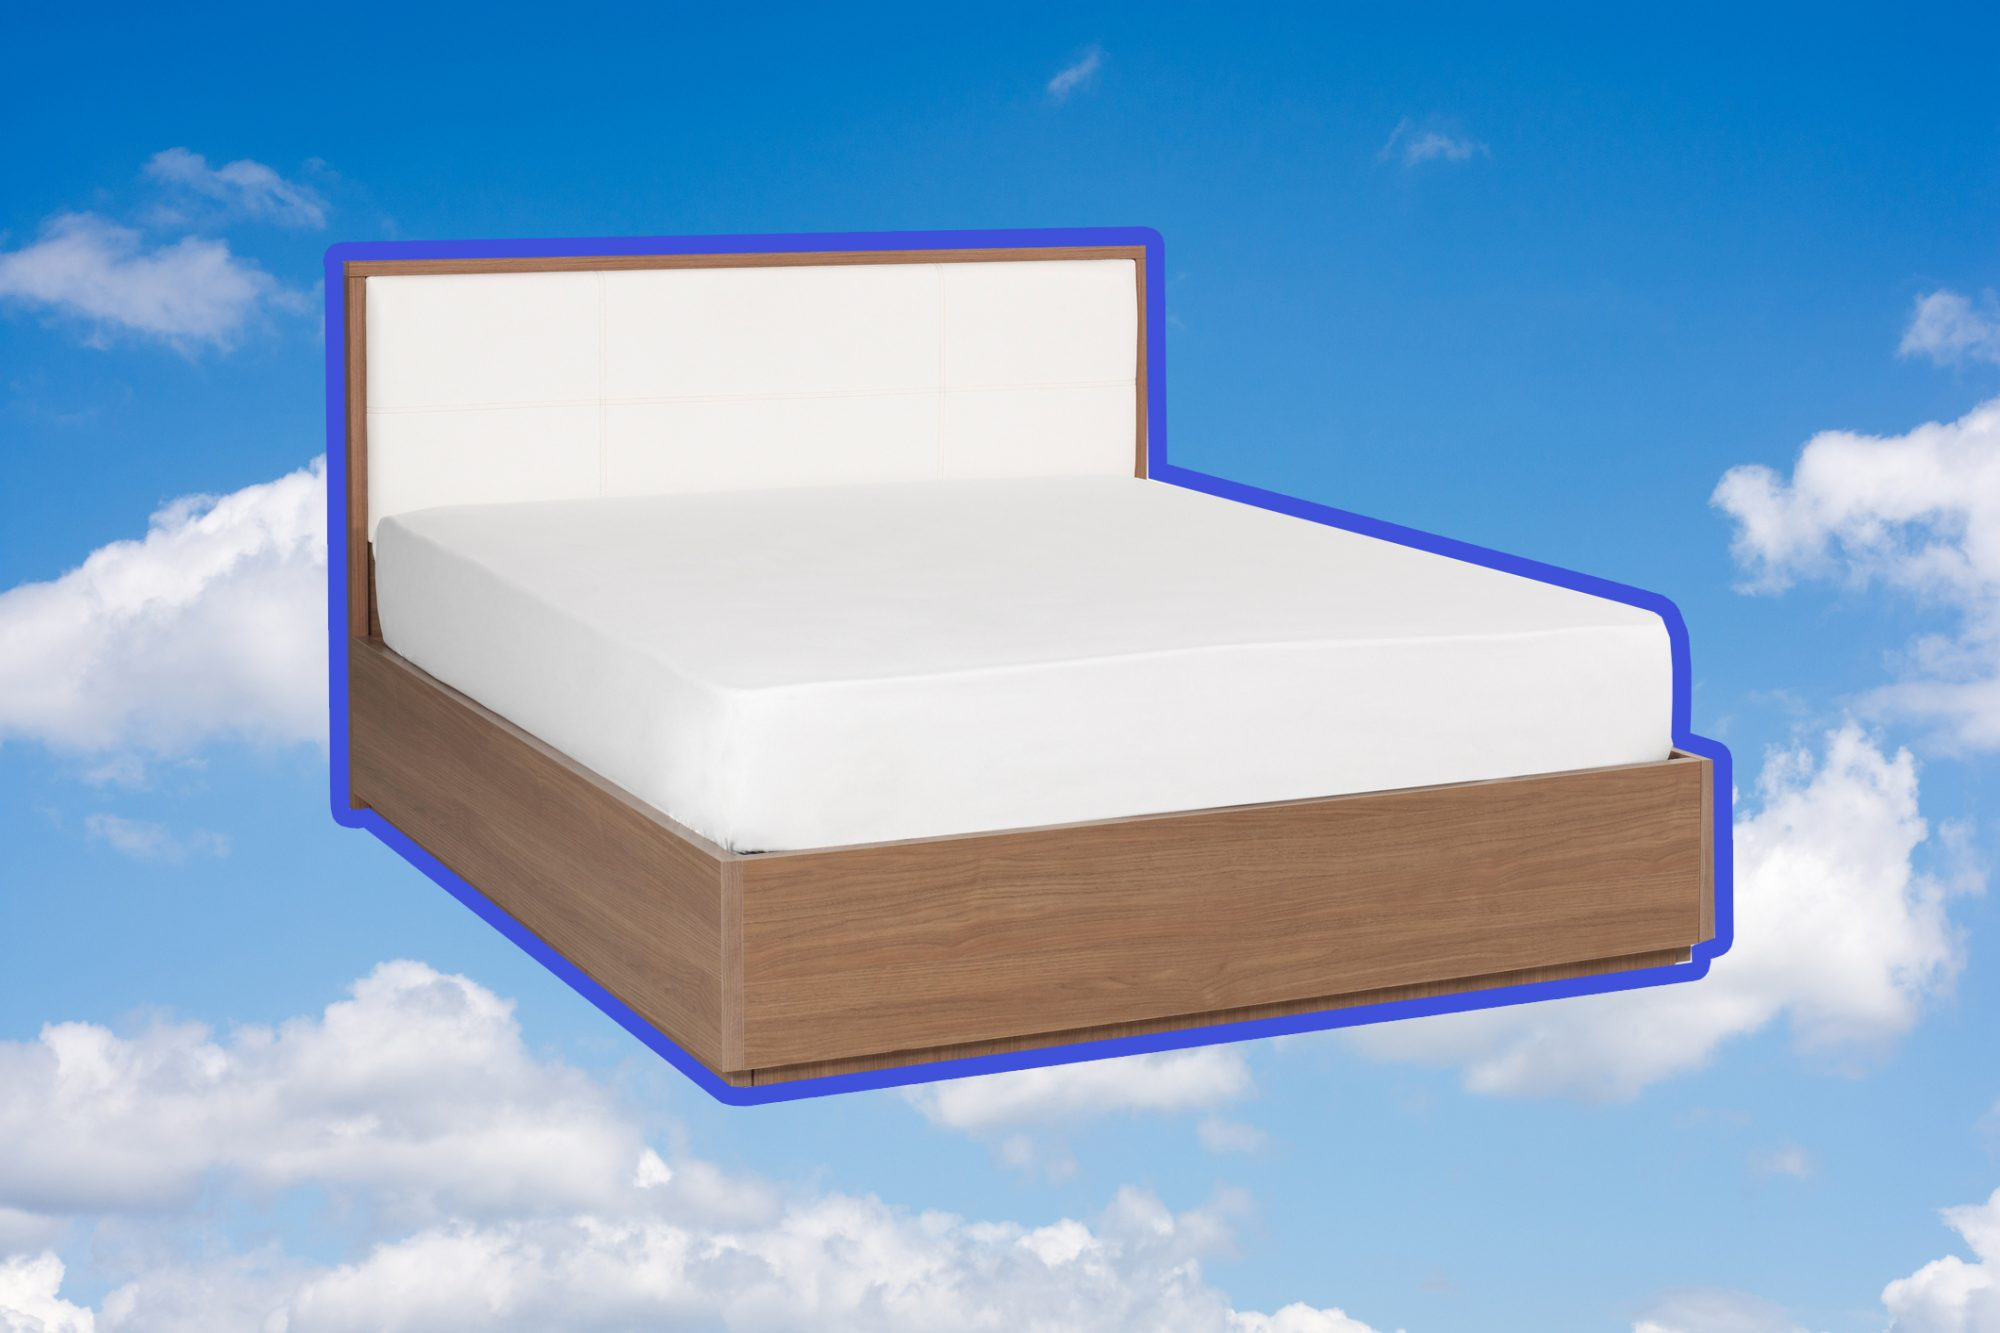 mattress in blue sky